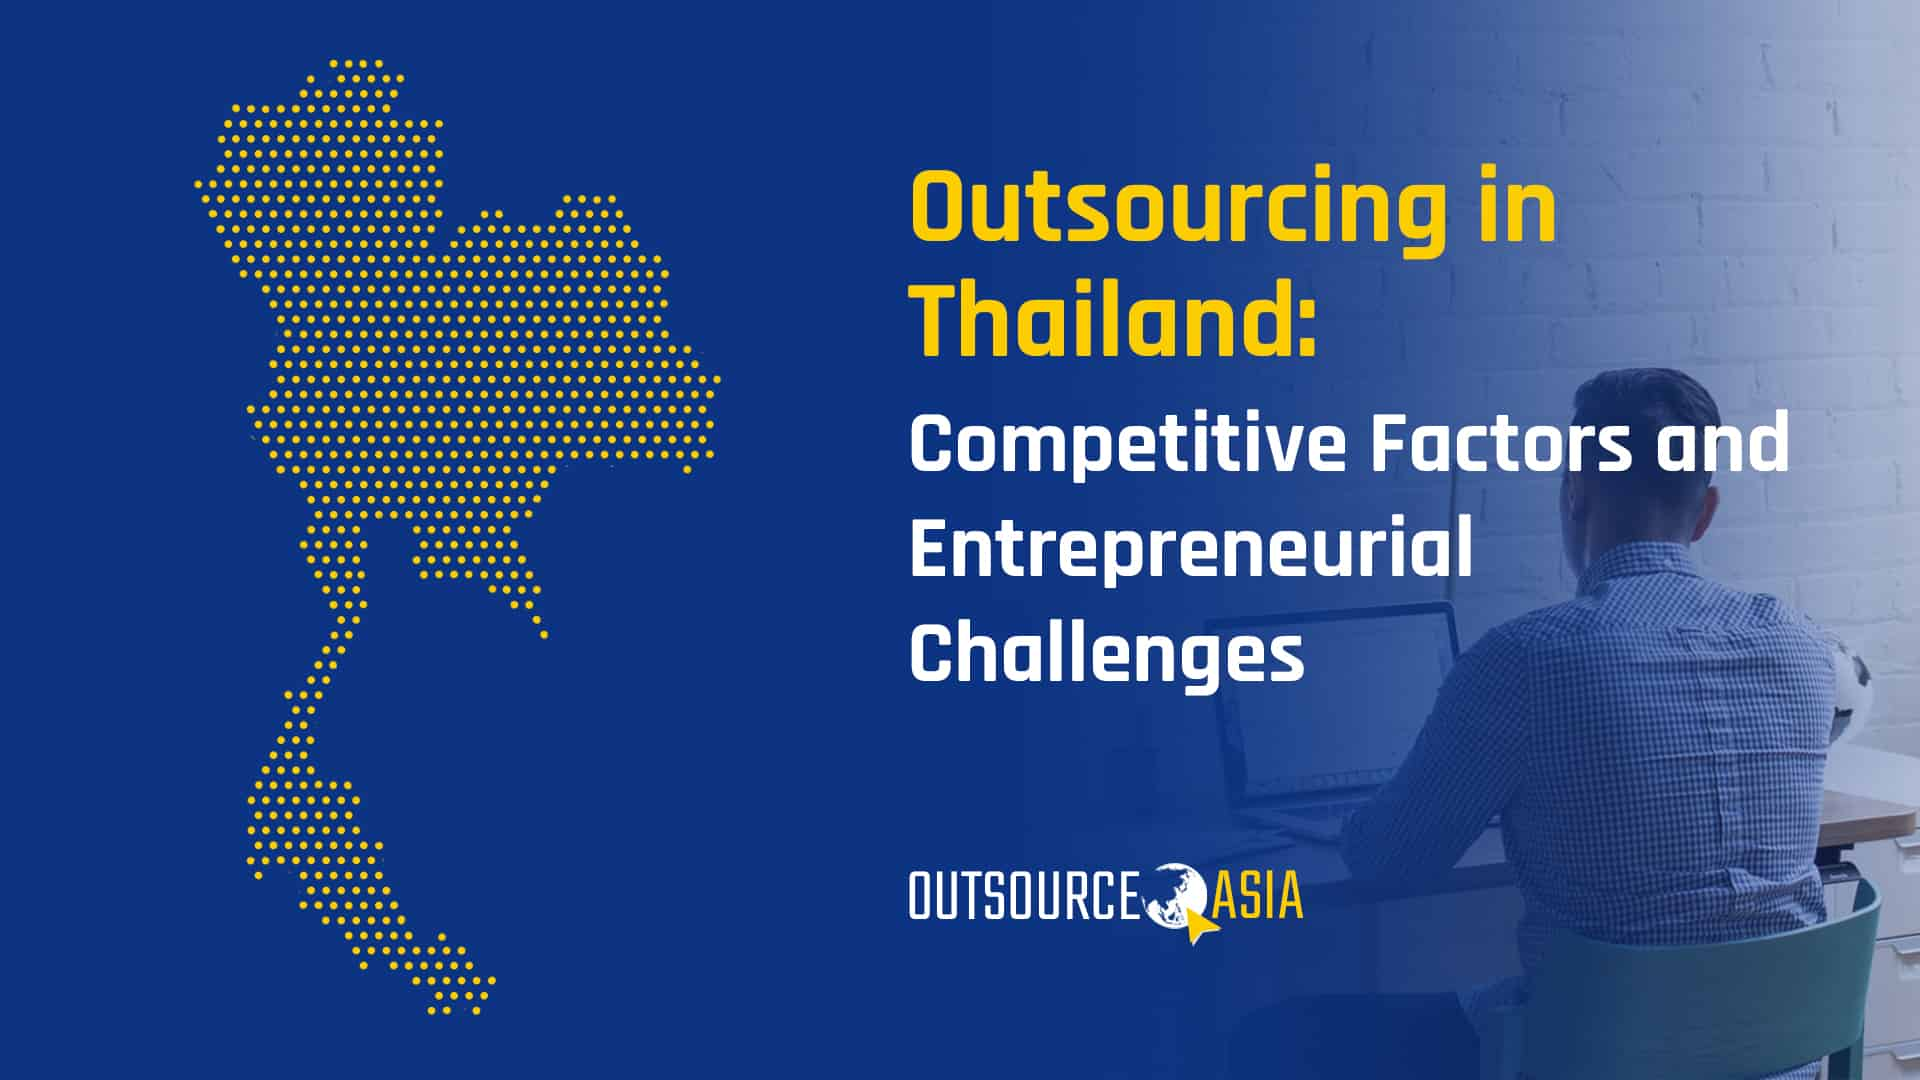 Outsourcing in Thailand